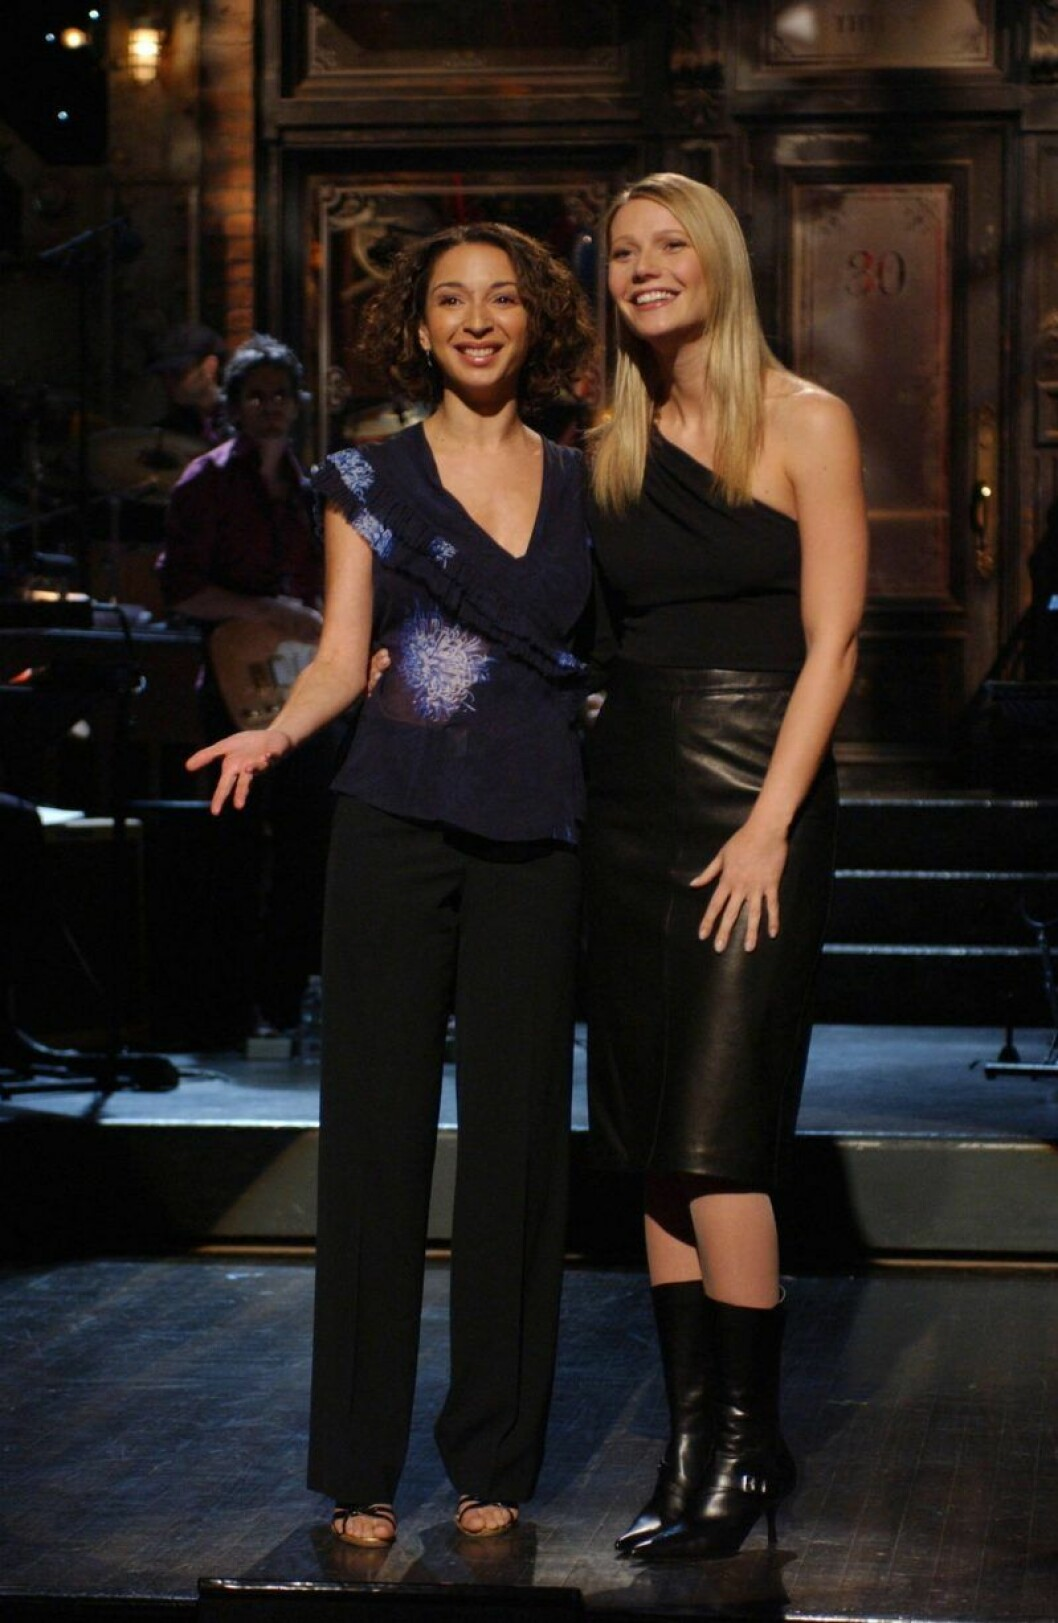 Maya Rudolph och Gwyneth Paltrow när de medverkade i Saturday Night Live år 2001.